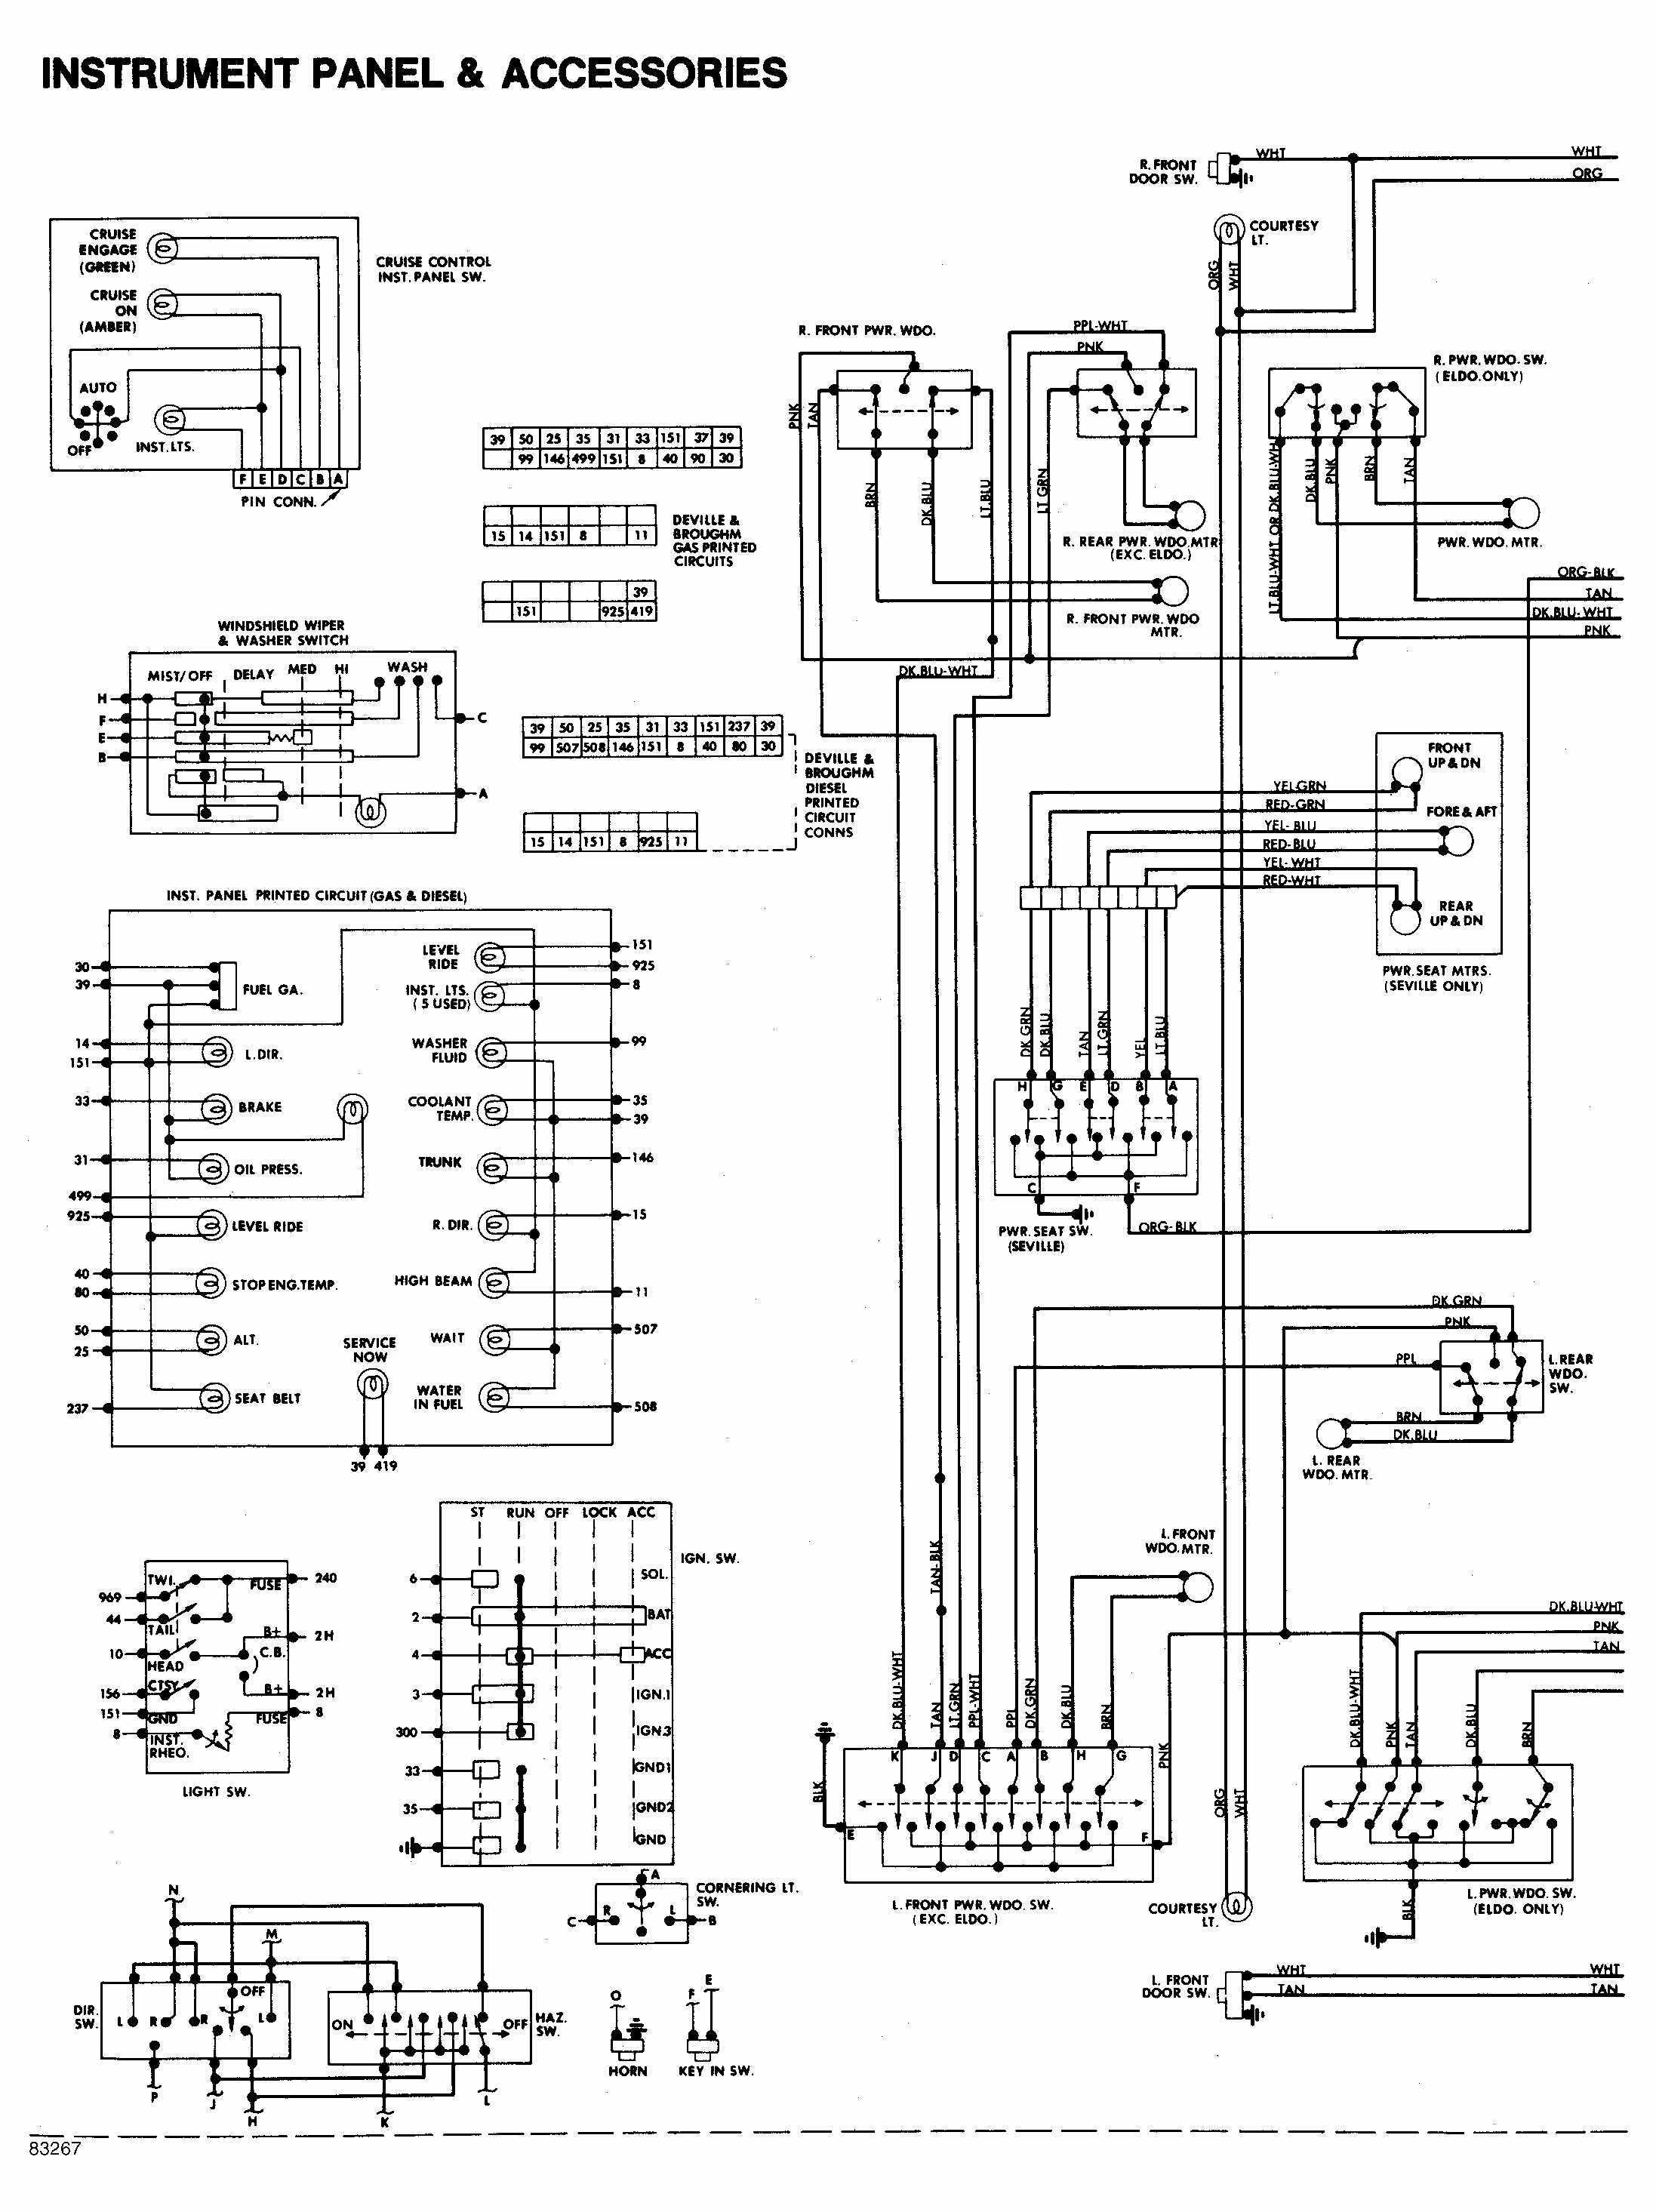 1977 chevy fuse box auto electrical wiring diagram chevy diagrams [ 2194 x 2931 Pixel ]